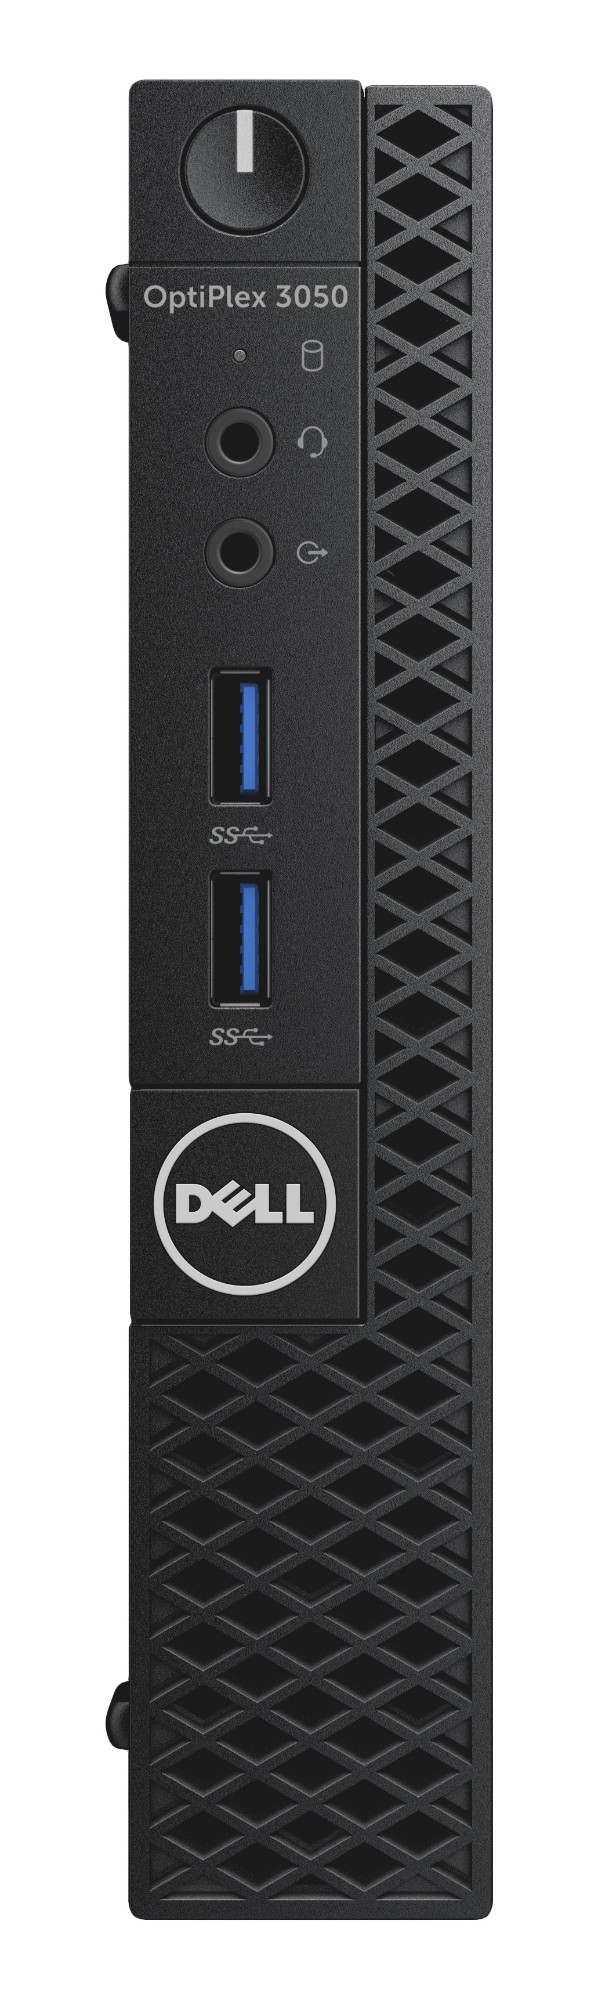 DELL OptiPlex 3050 2.70 GHz 7th gen Intel® Core™ i5 i5-7500T Black Micro Tower Mini PC